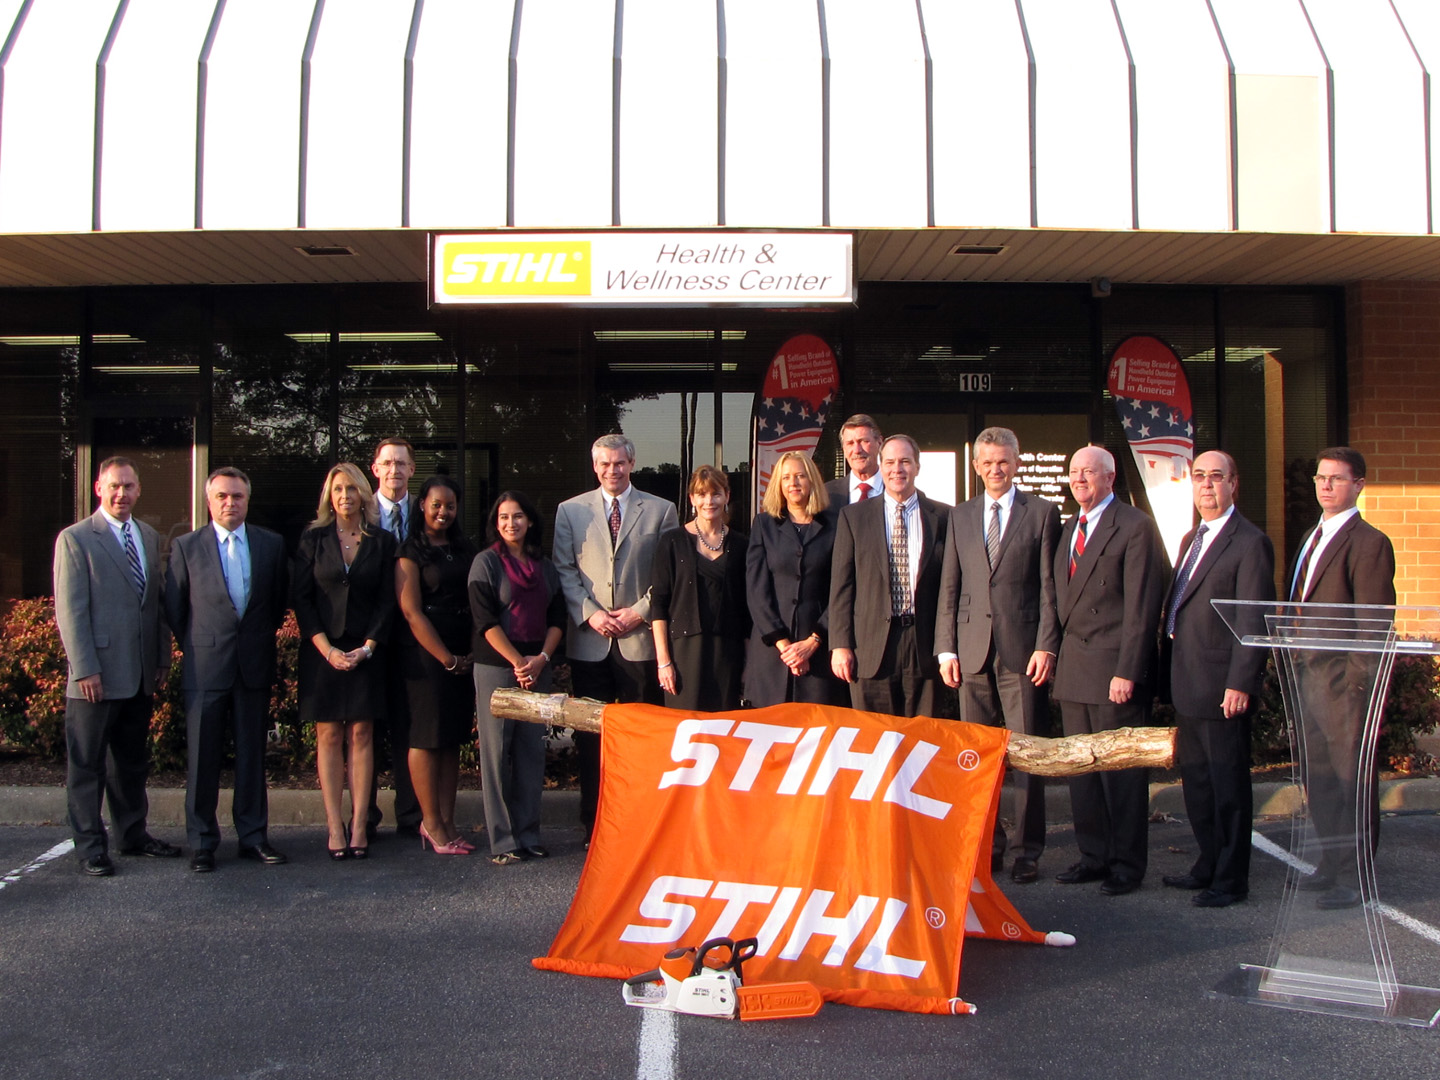 STIHL Executive Council, QuadMed Staff and Dr. Bertram Kandziora executive board chairman for the worldwide STIHL Group at the opening of the STIHL Health and Wellness Center